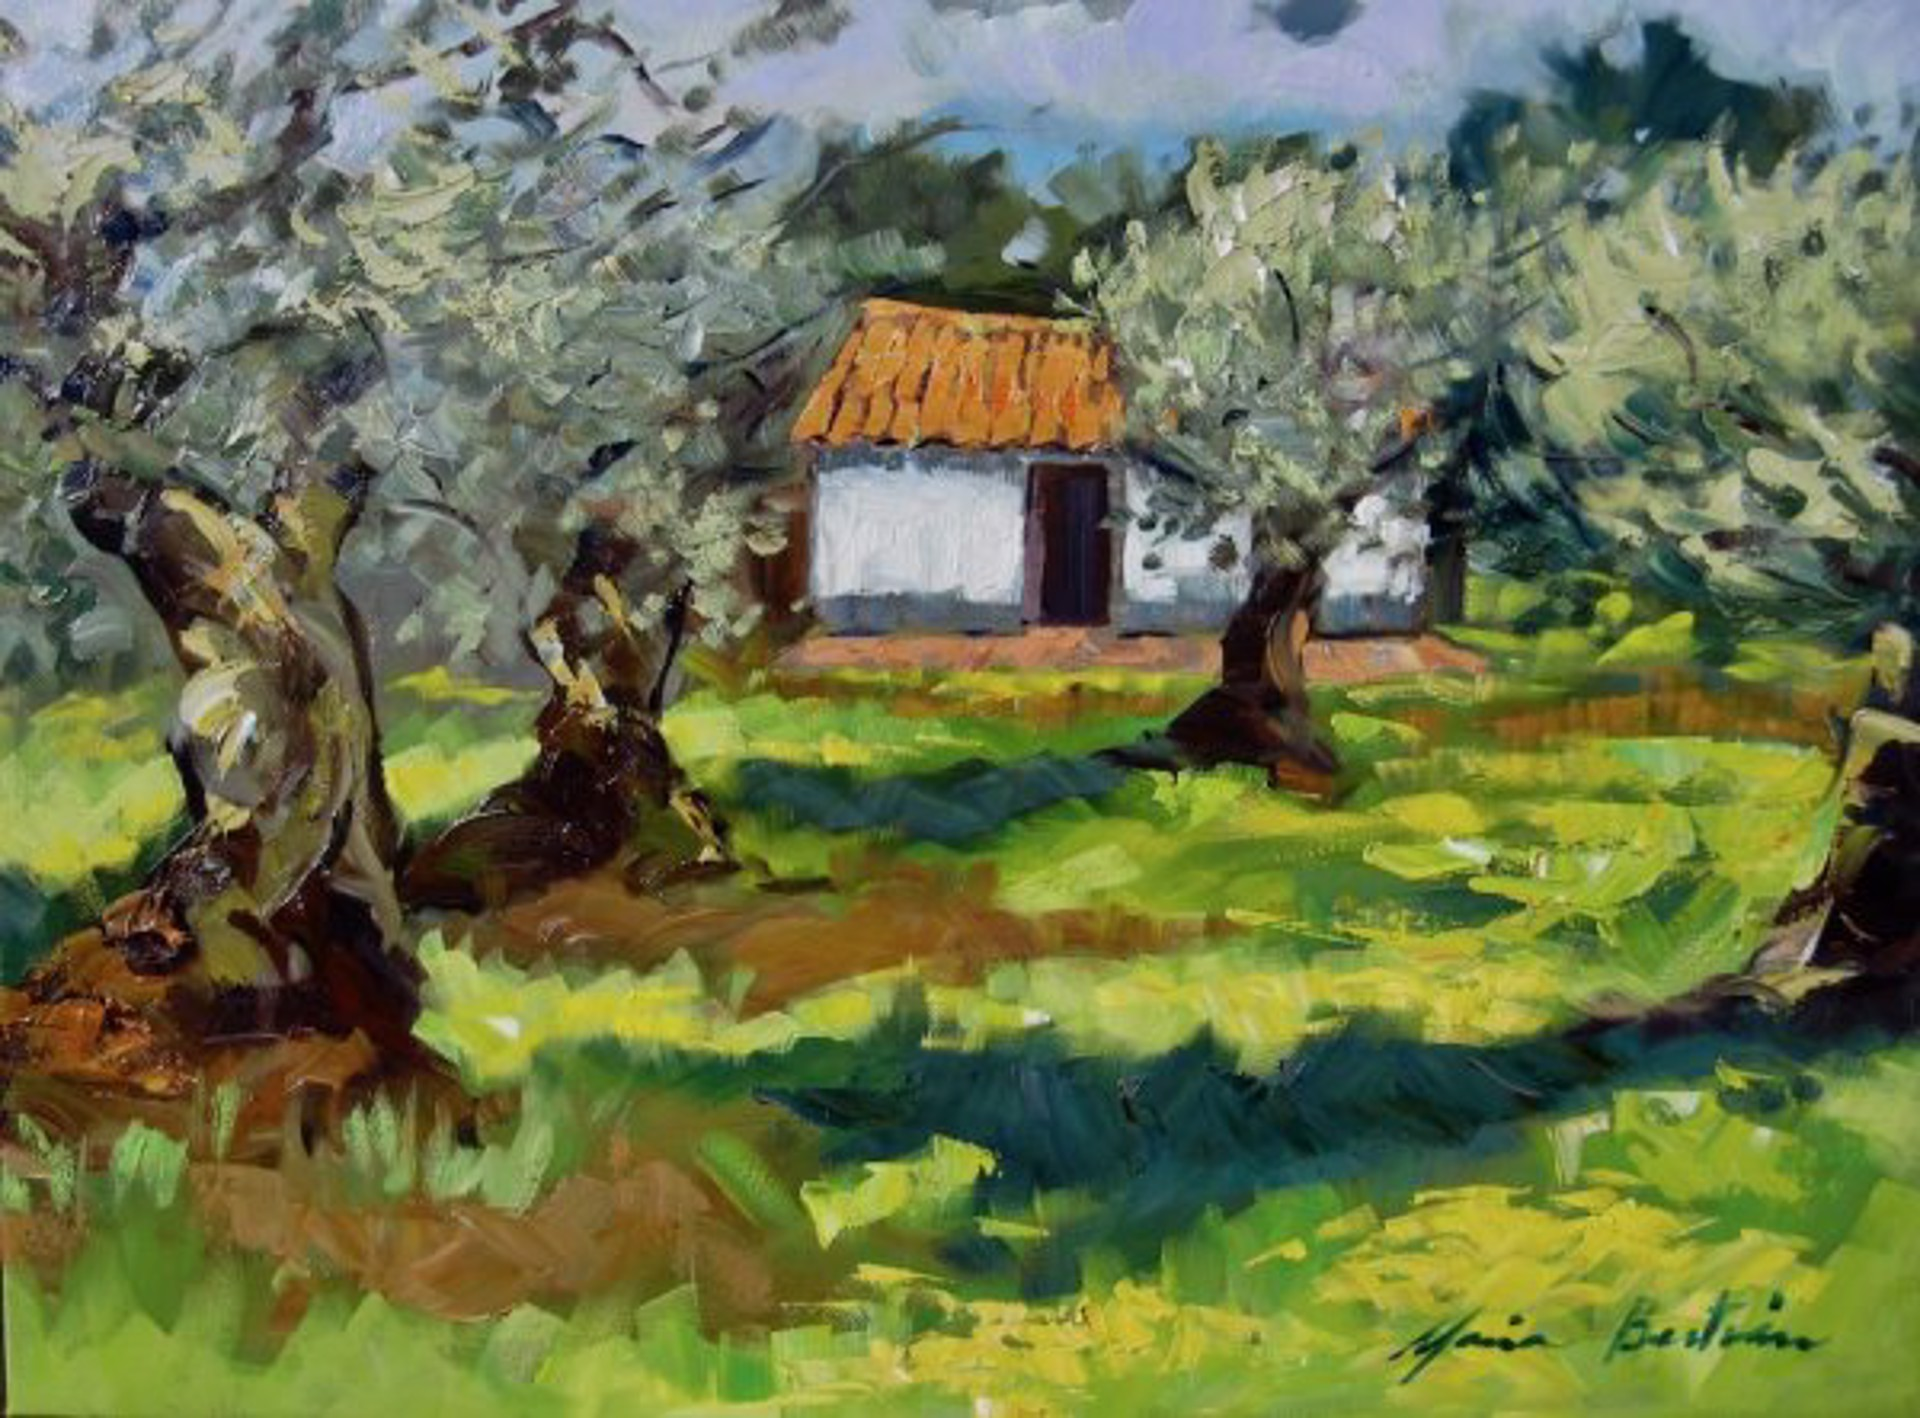 White House In The Olive Grove by Maria Bertrán